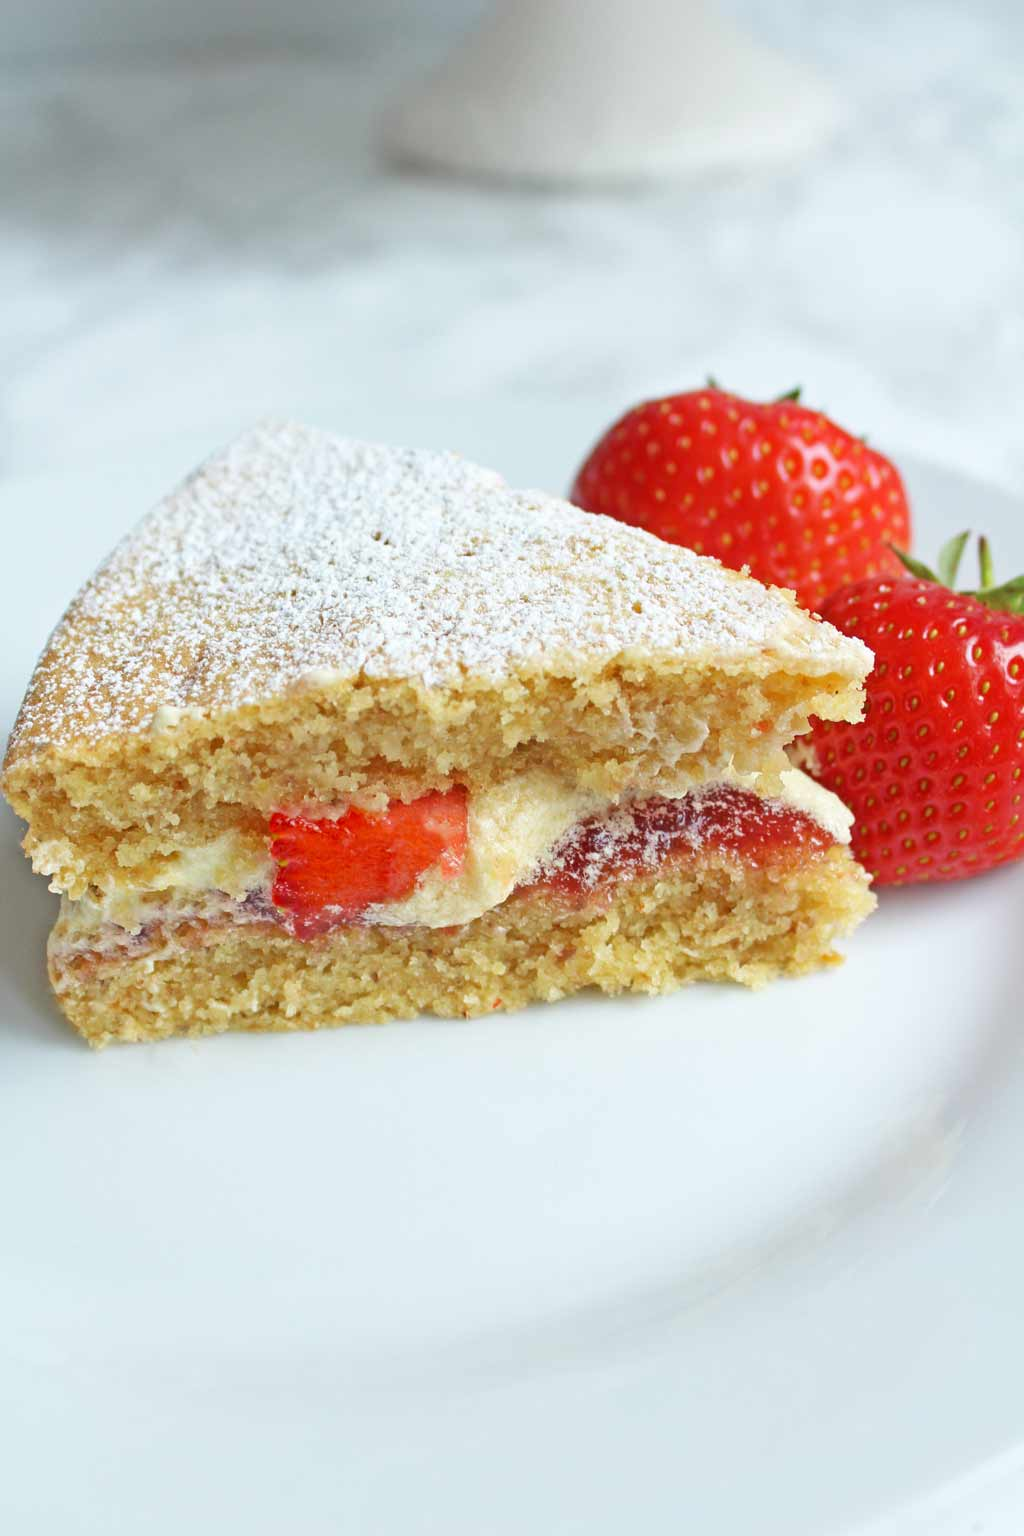 slice of vegan victoria sponge cake